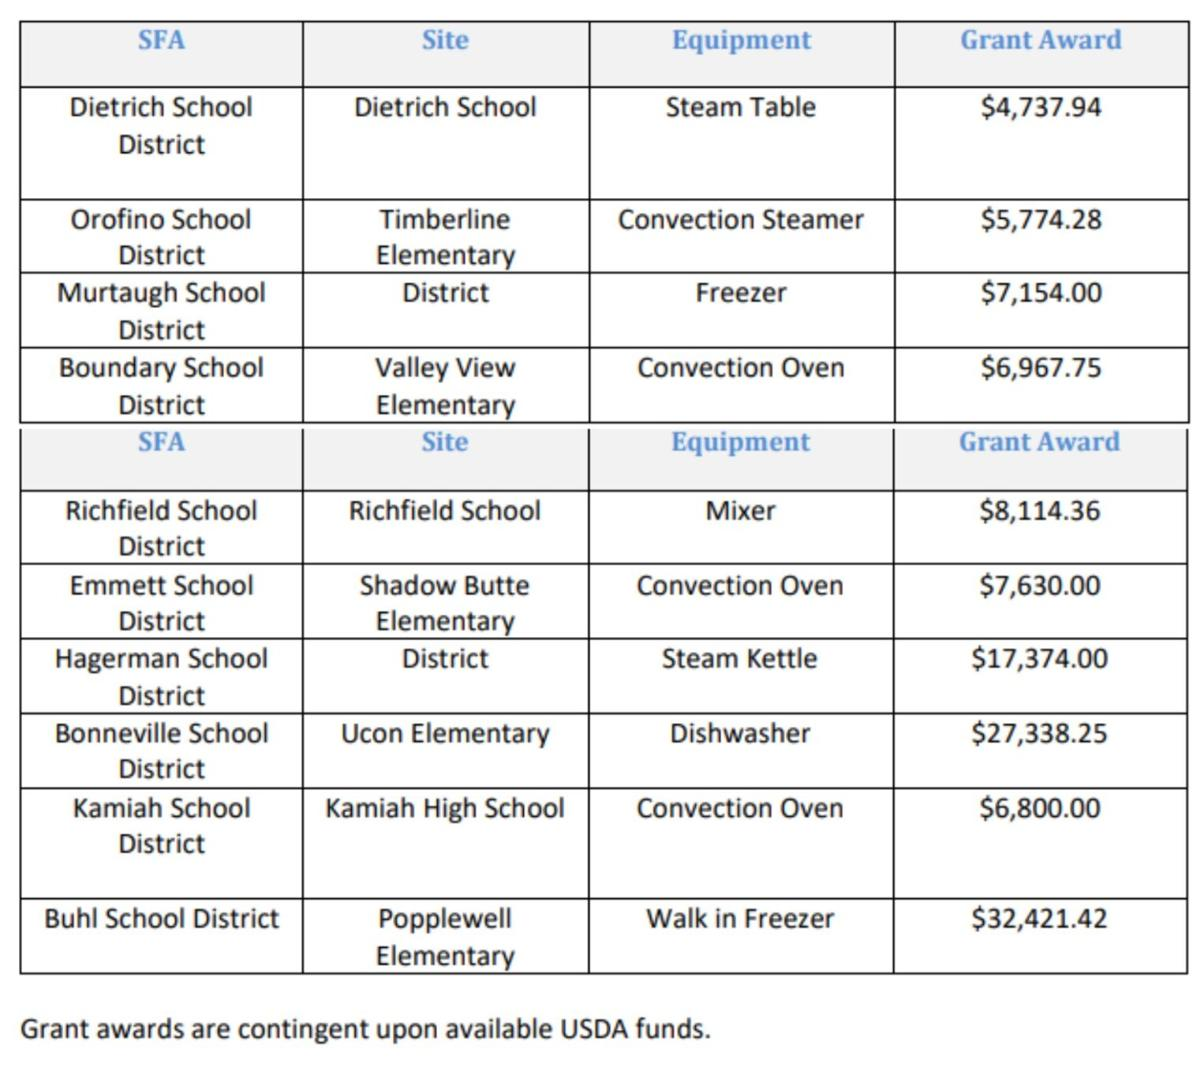 Idaho SDE Grant Awards